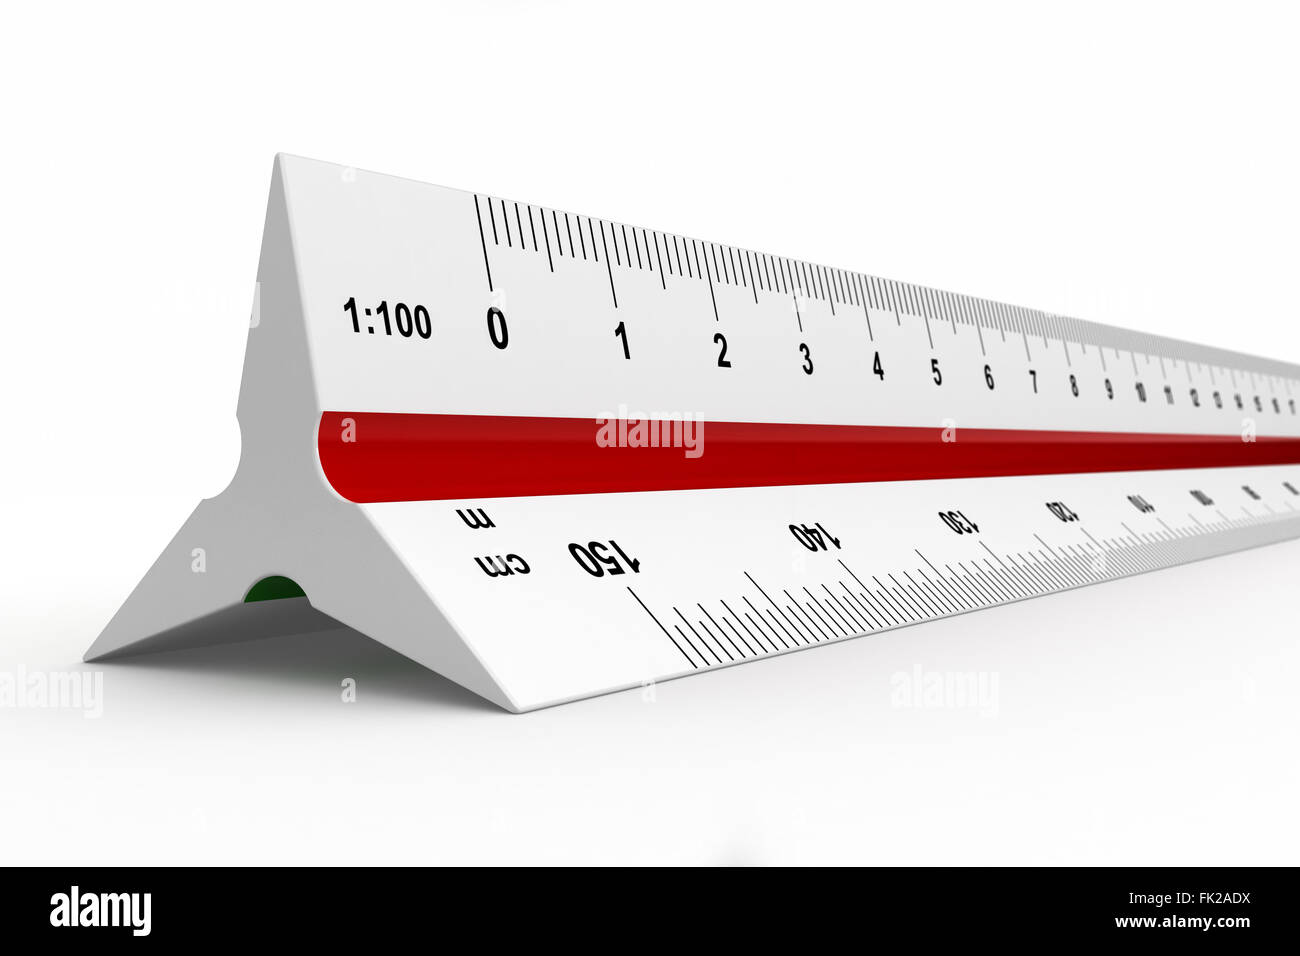 3d render of reduction scale ruler on white background - Stock Image